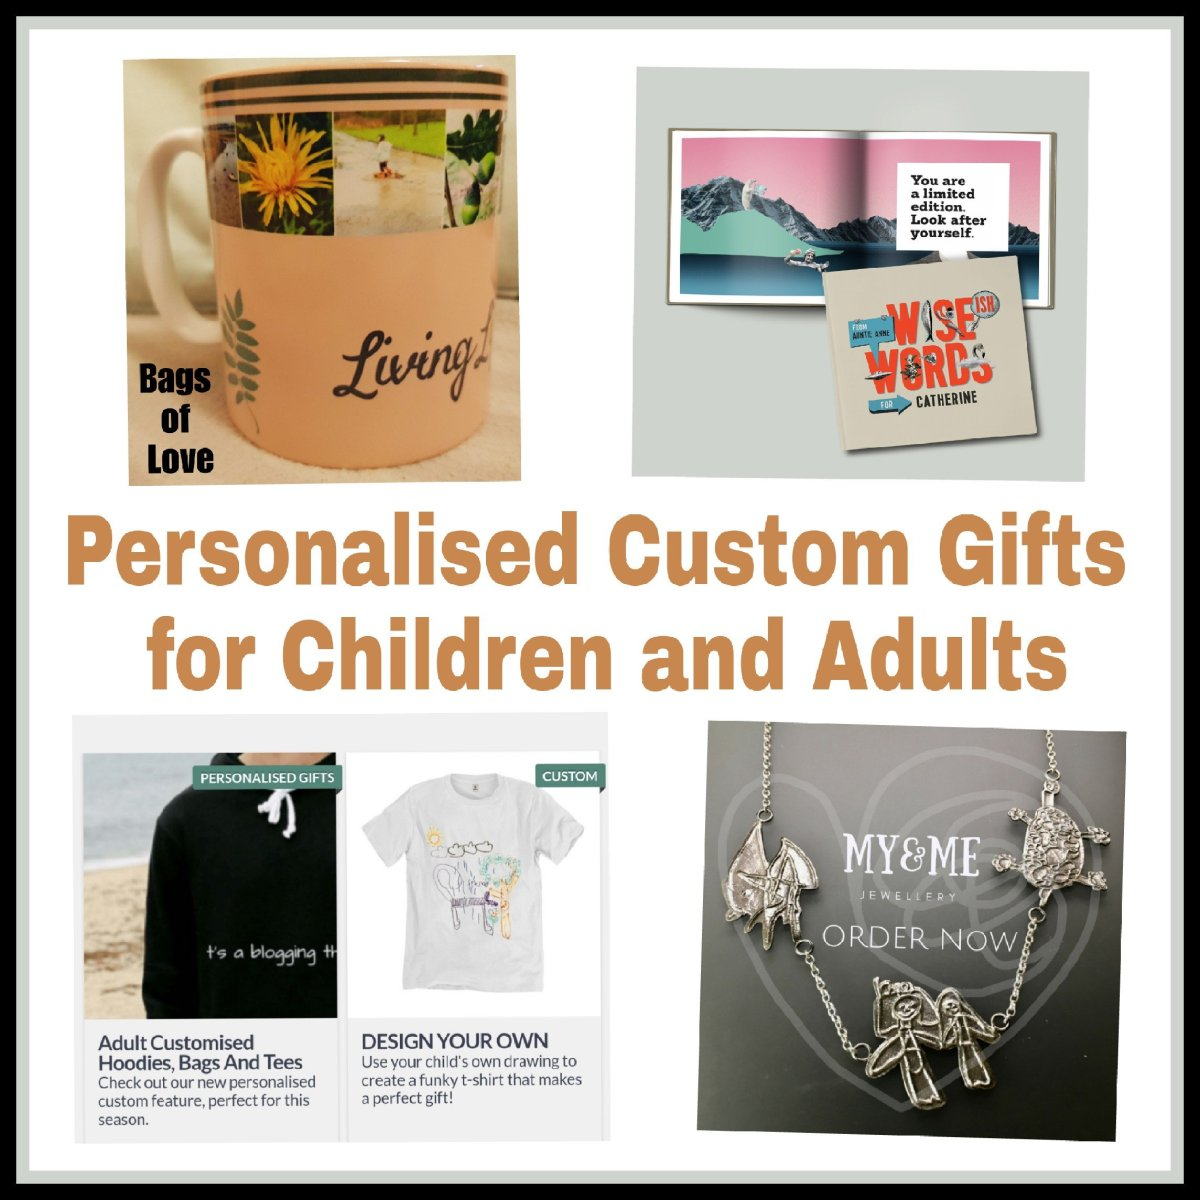 Personalised Gift Ideas – A Creative Gift Guide for Adults and Children